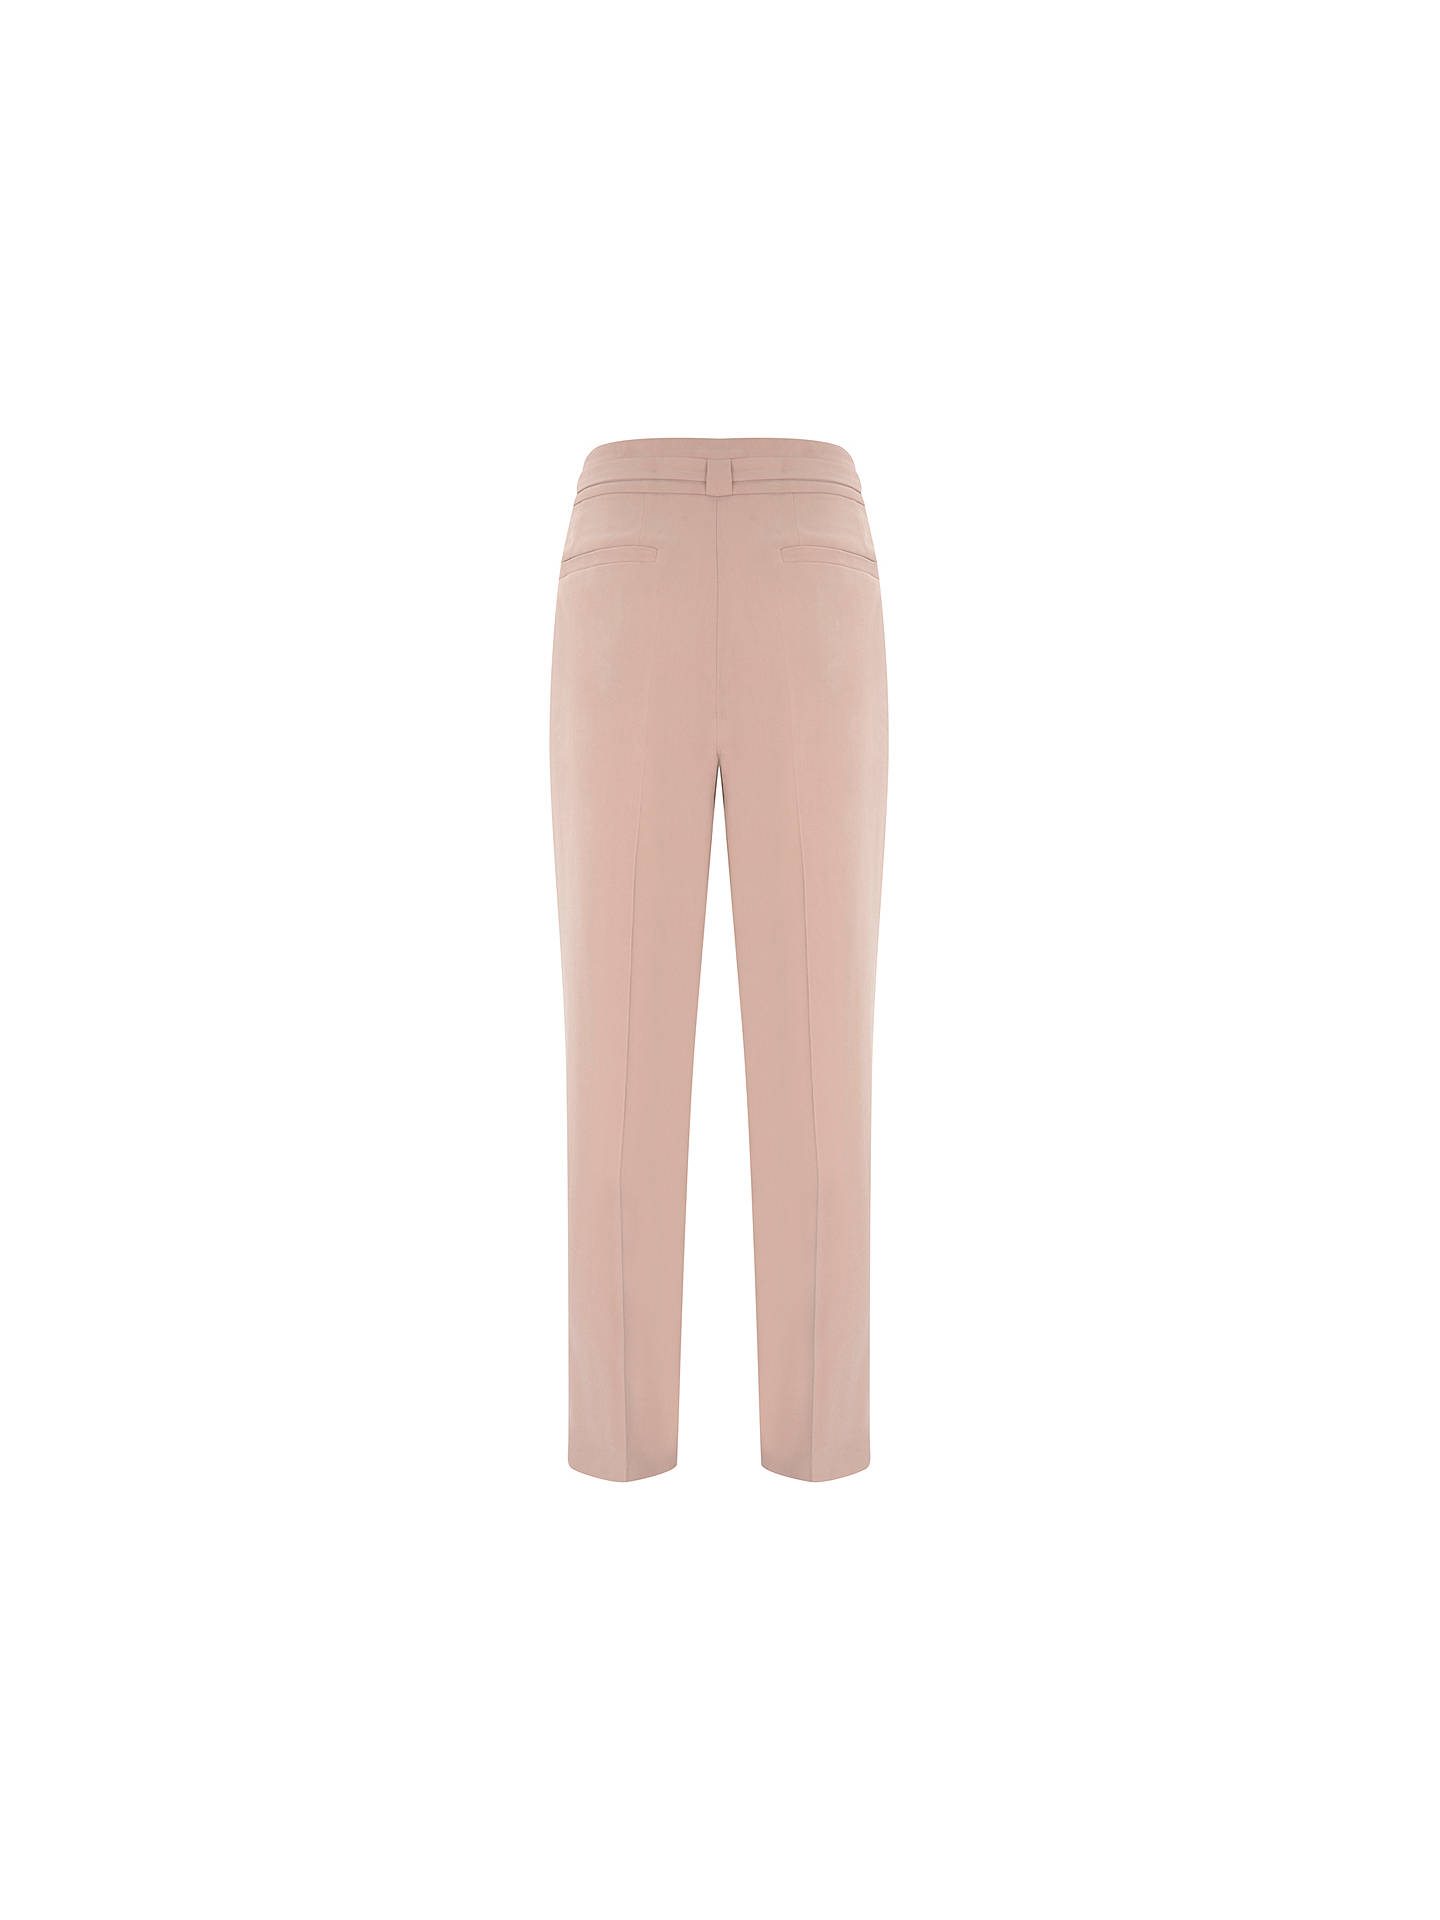 BuyMint Velvet Belted Tapered Trousers, Light Pink, 16L Online at johnlewis.com